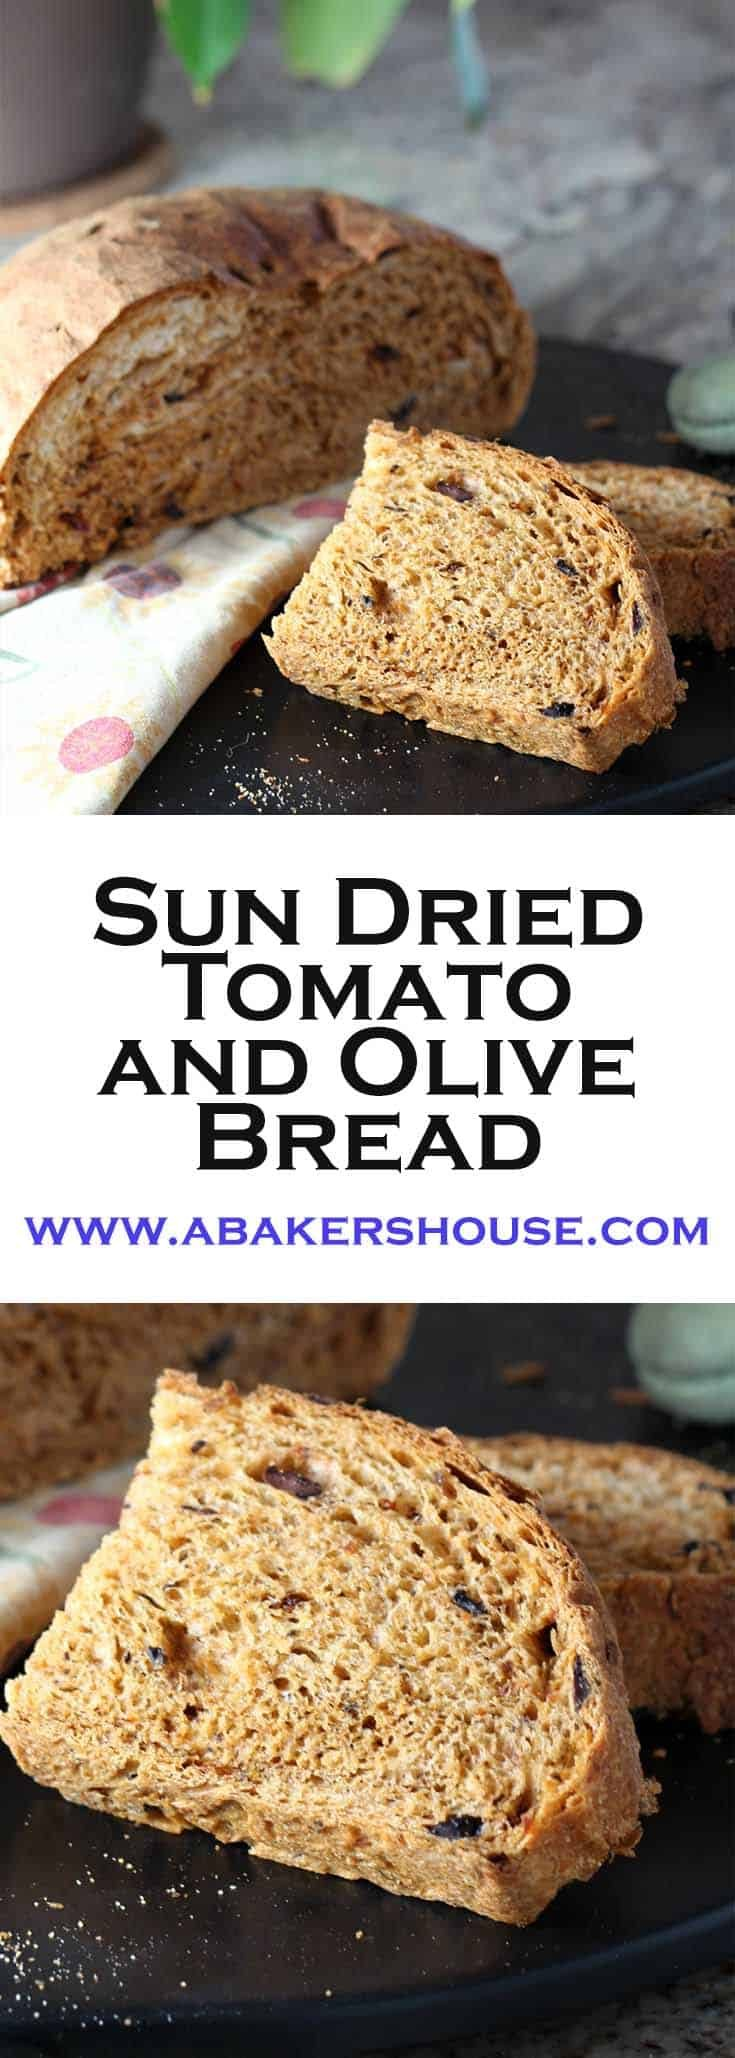 This recipe for sun dried tomato and olive bread uses equal amounts (in weight)of sun dried tomatoes and olives and the flavor is boosted by adding in a small bit of olive oil in which the sun dried tomatoes were jarred. #sundriedtomato #homemadebread #abakershouse